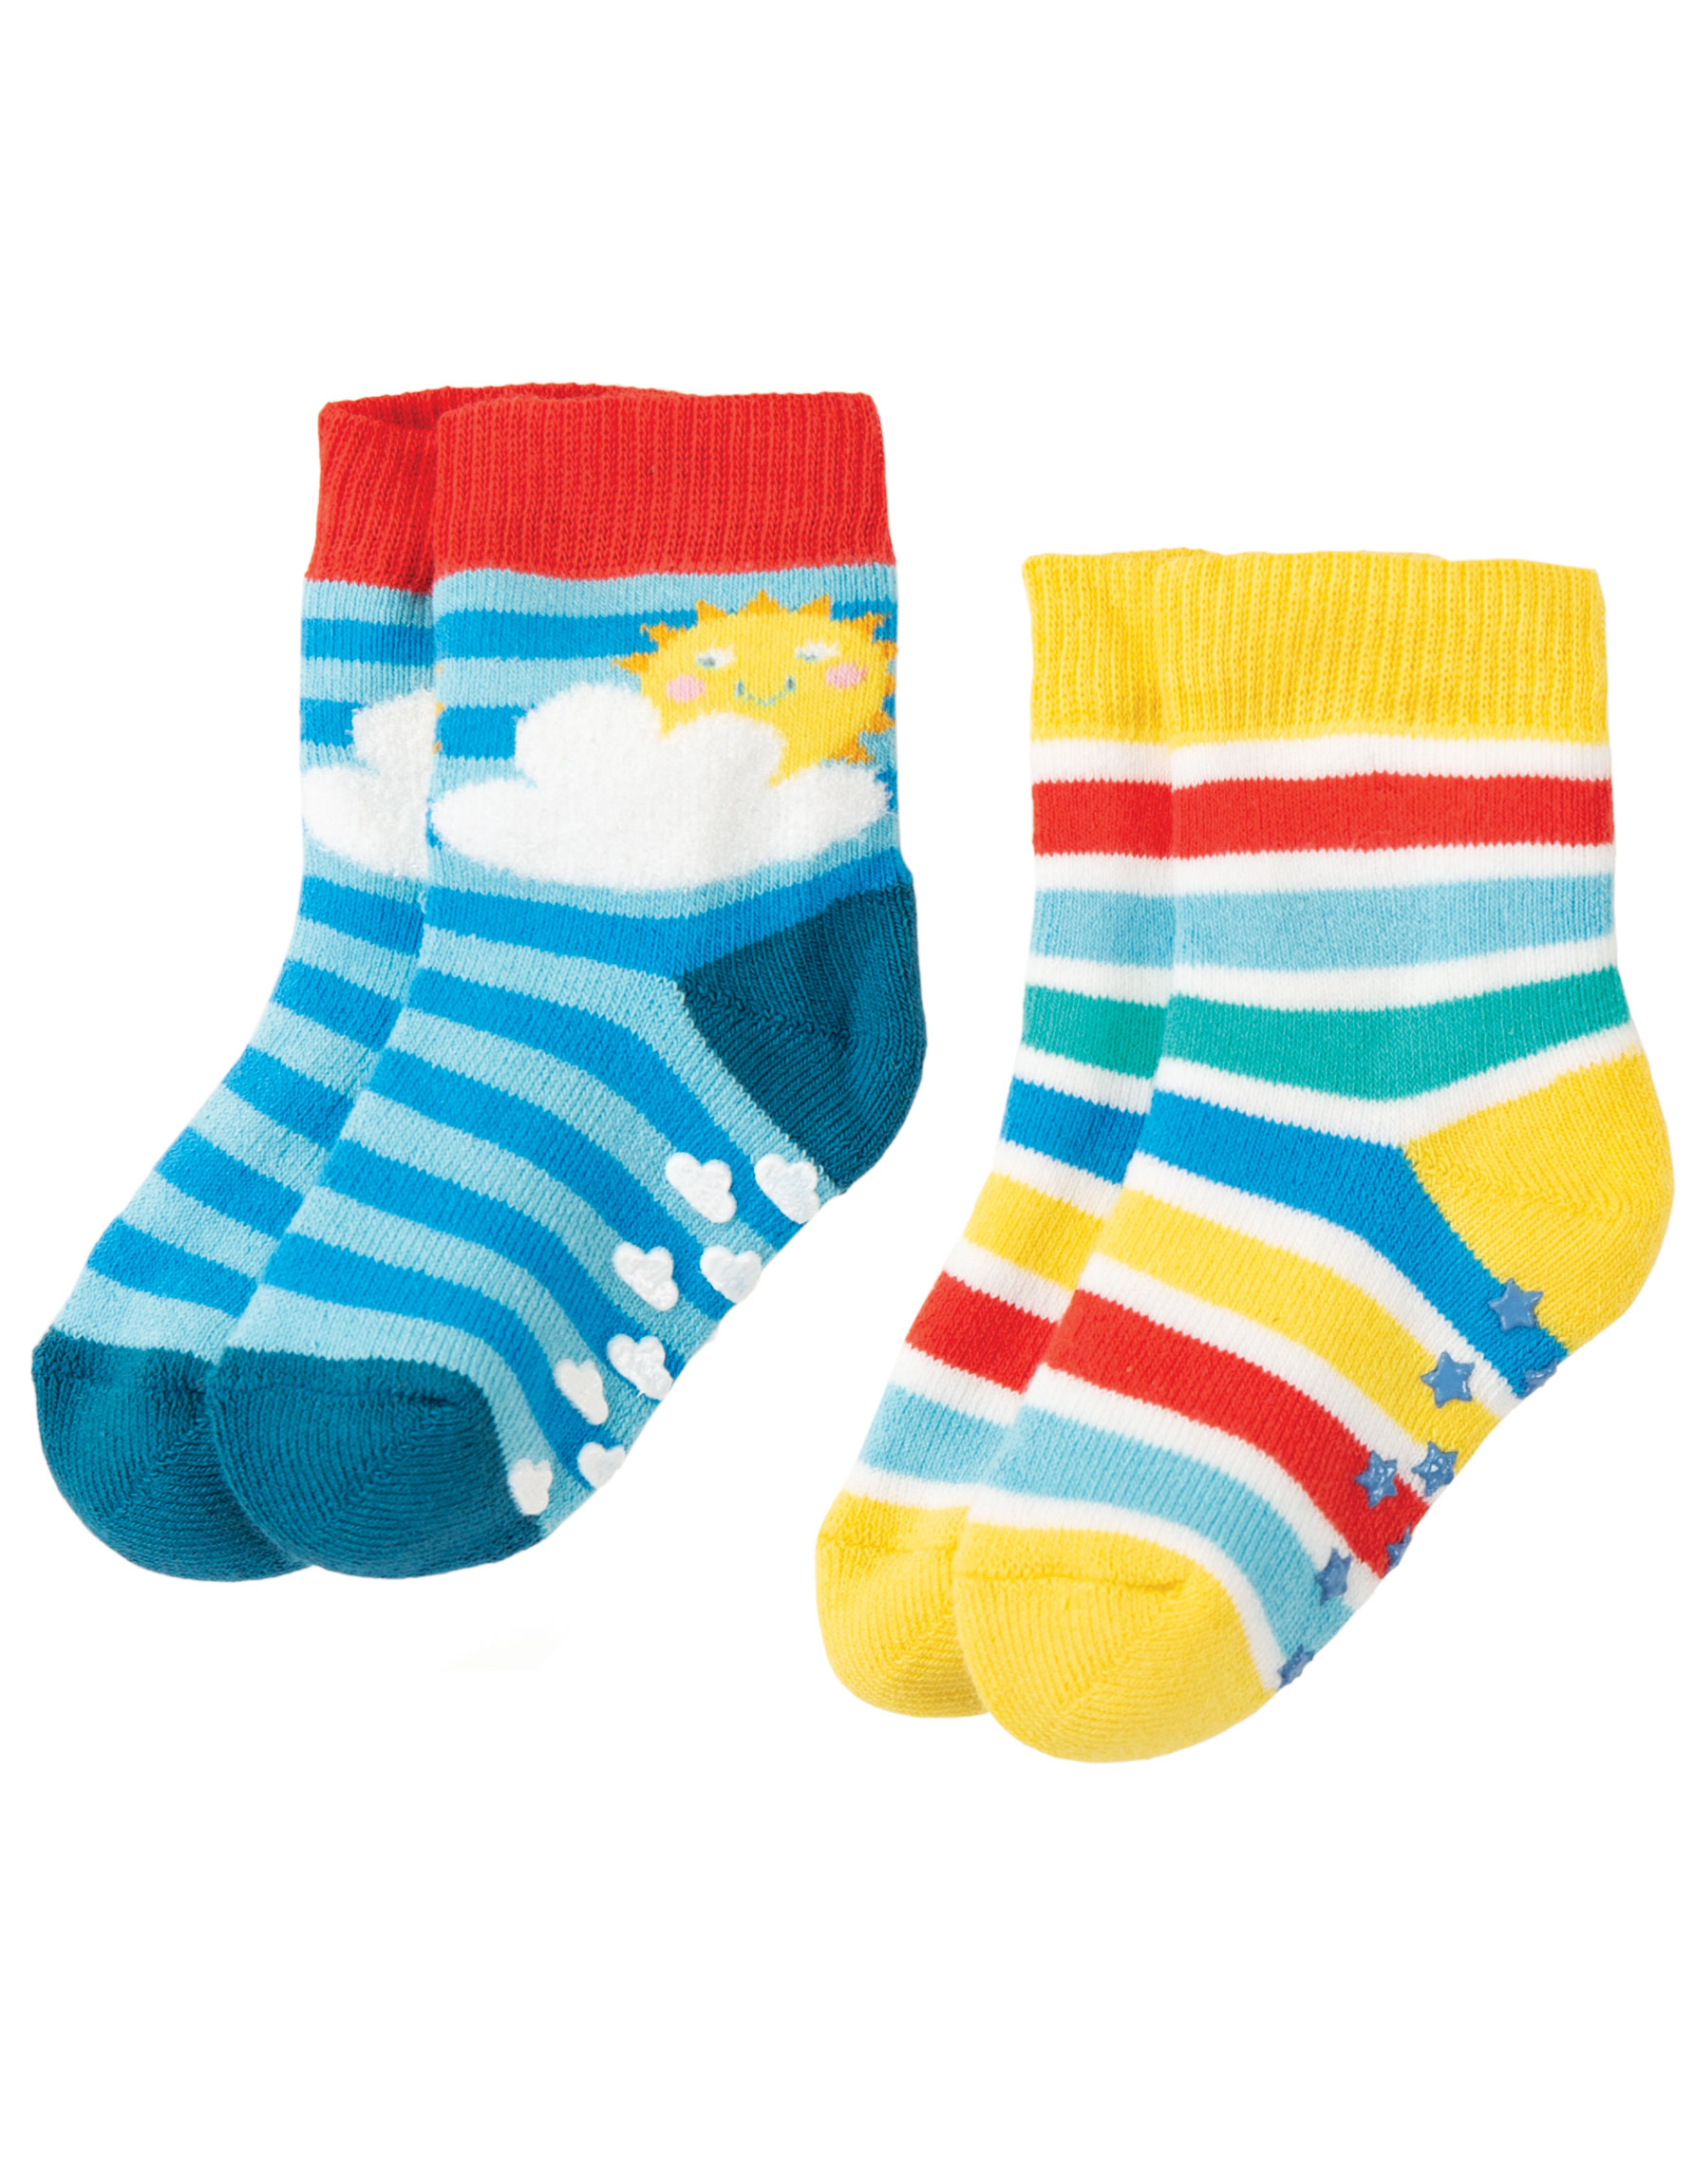 Frugi - Grippy Socks 2 Pack - Rainbow